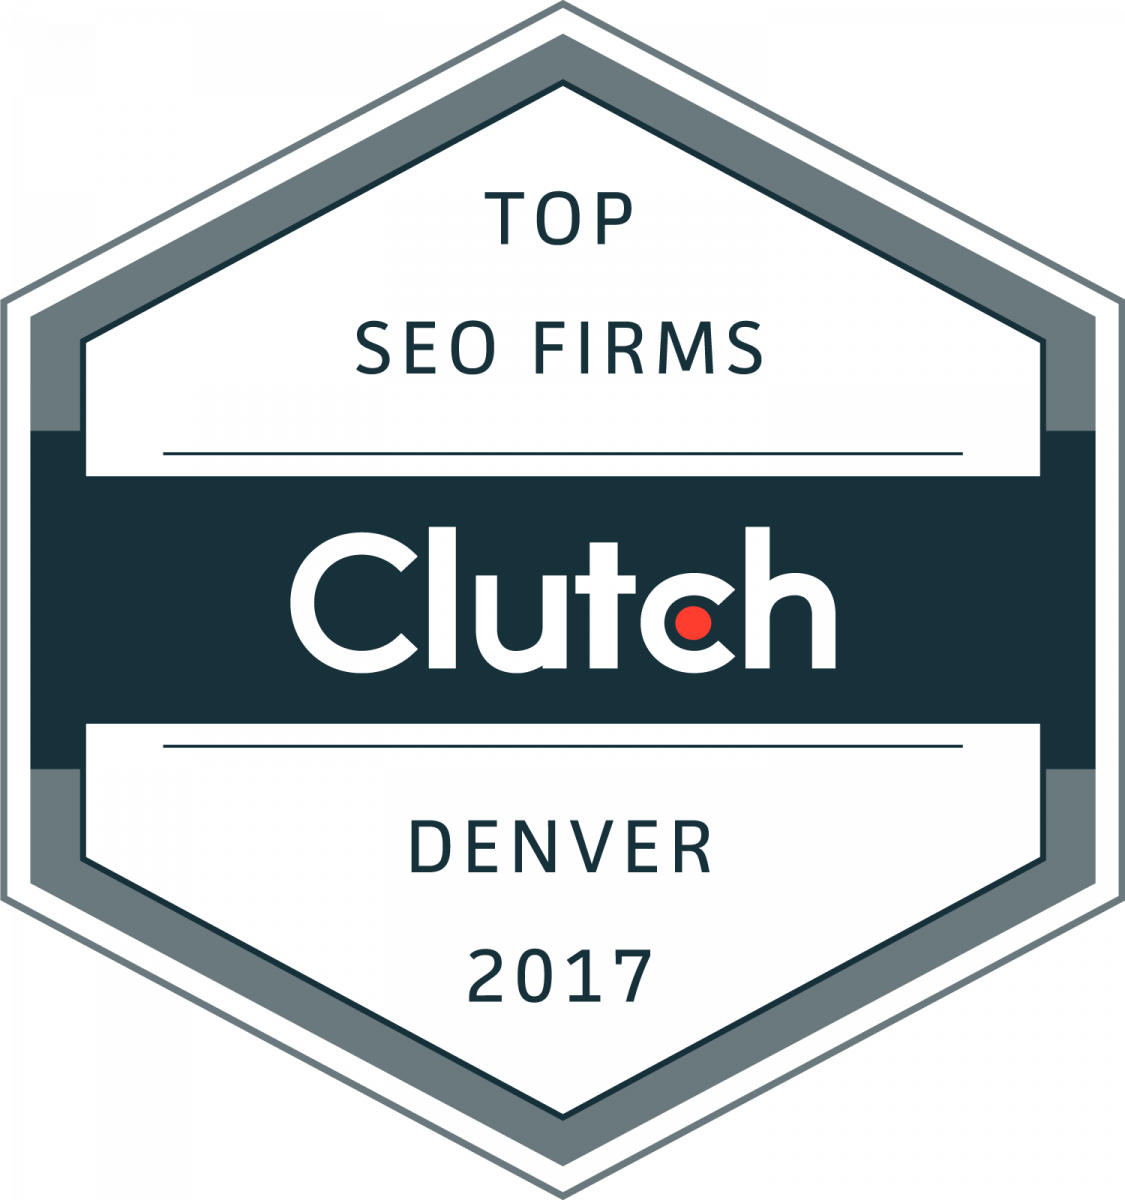 top seo firms denver 2017